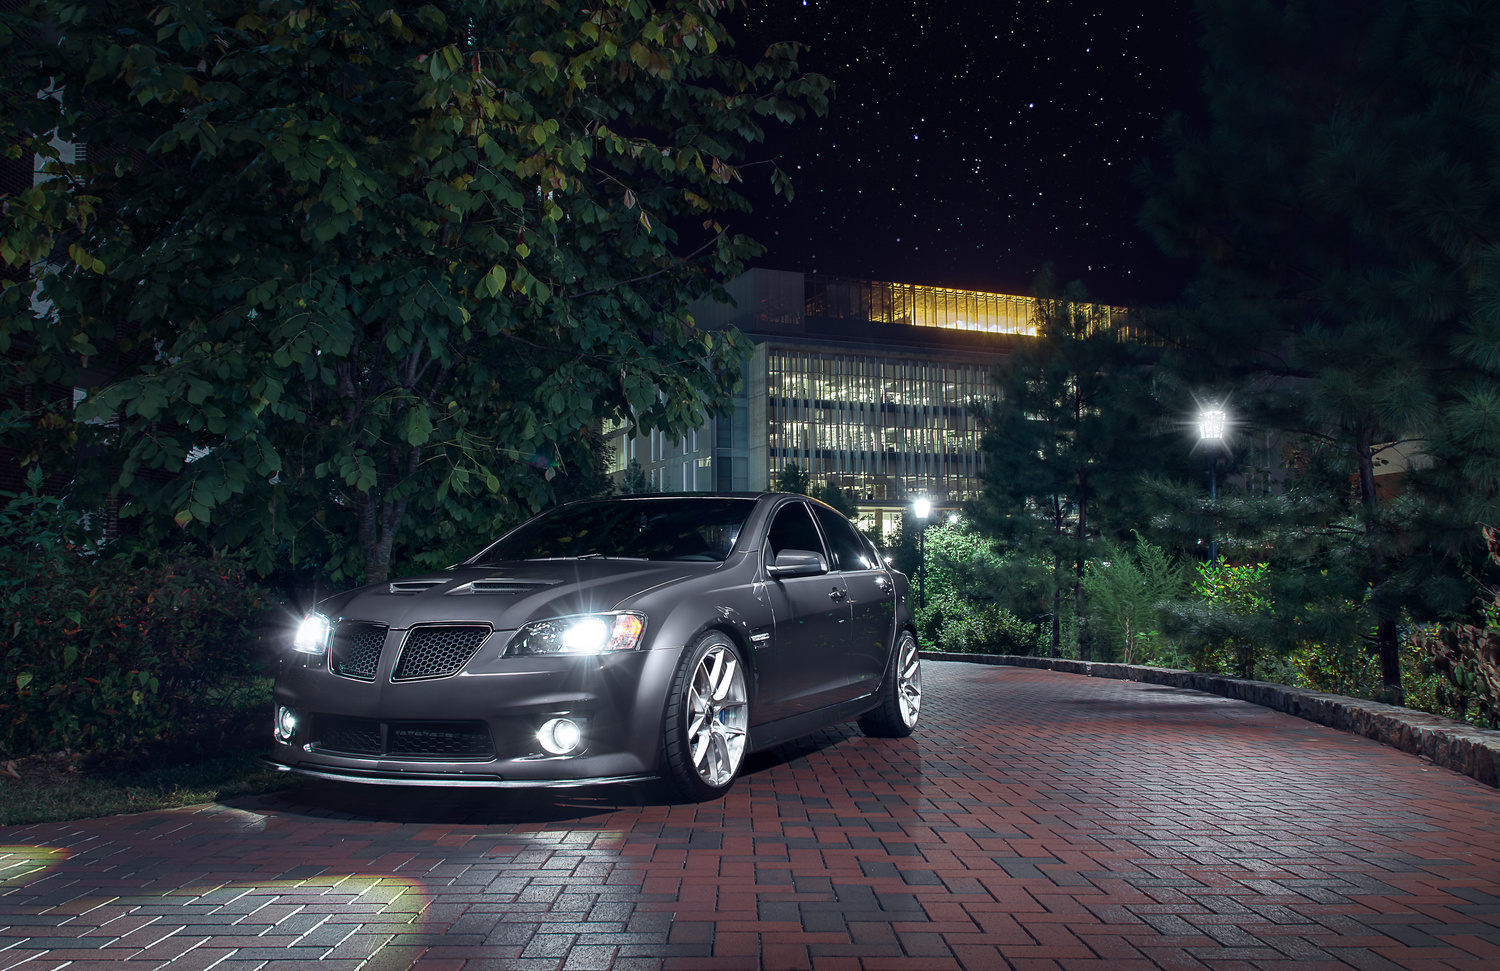 Pontiac G8 by Jimmy Zhang